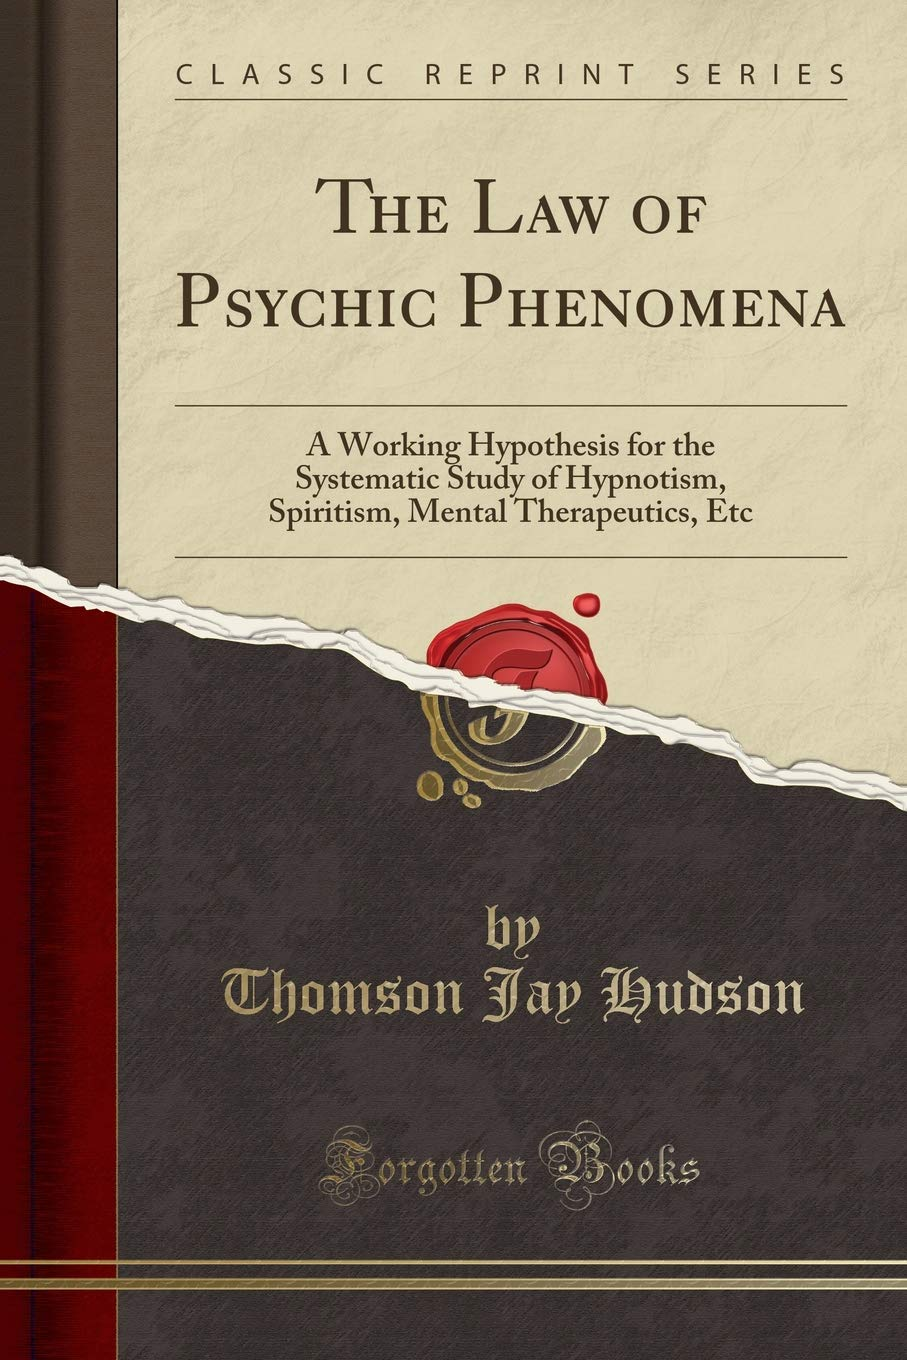 The Law of Psychic Phenomena: A Working Hypothesis (Classic Reprint) pdf